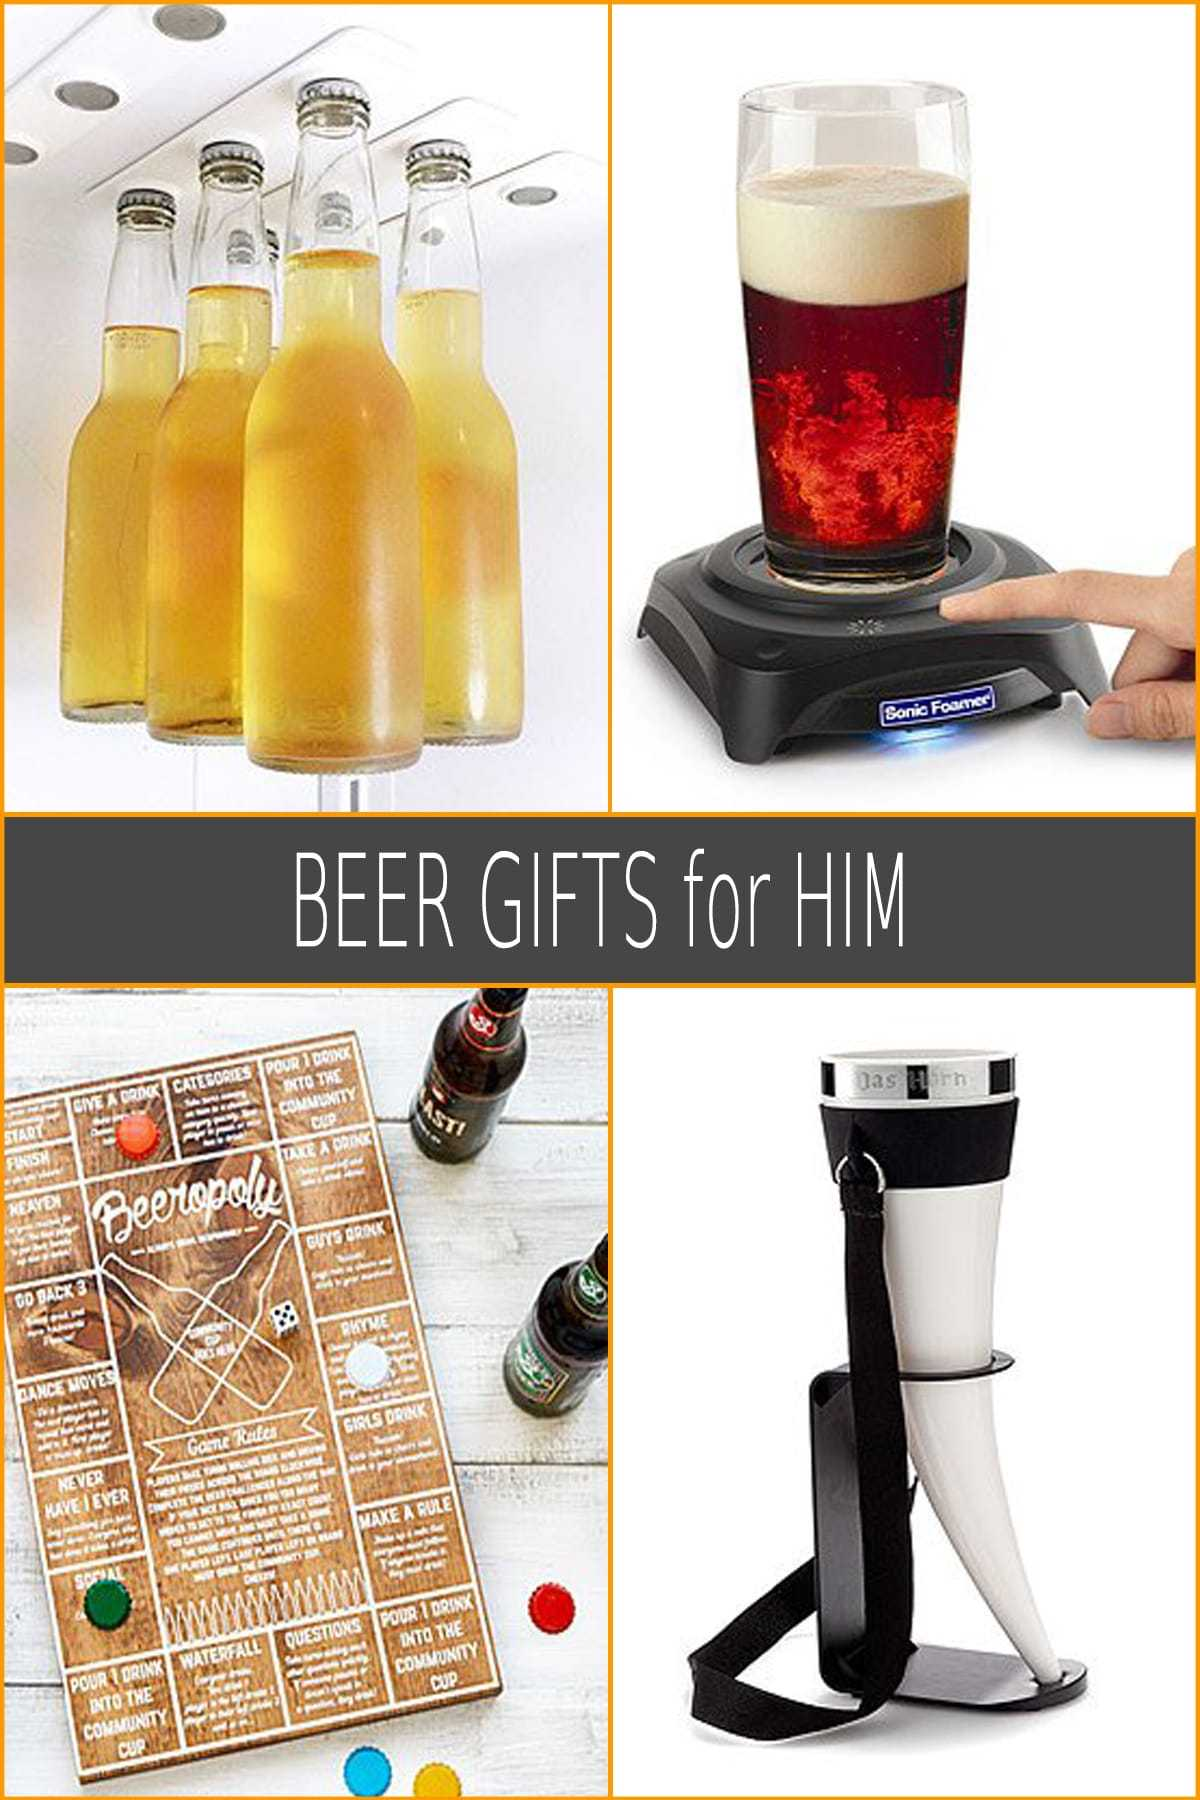 Beer Gifts for Him #beergiftsforhim #beergiftforhim #beergift #craftbeergift #giftsforhim #beergiftsforhusband #beergiftsforboyfriend #funbeergifts